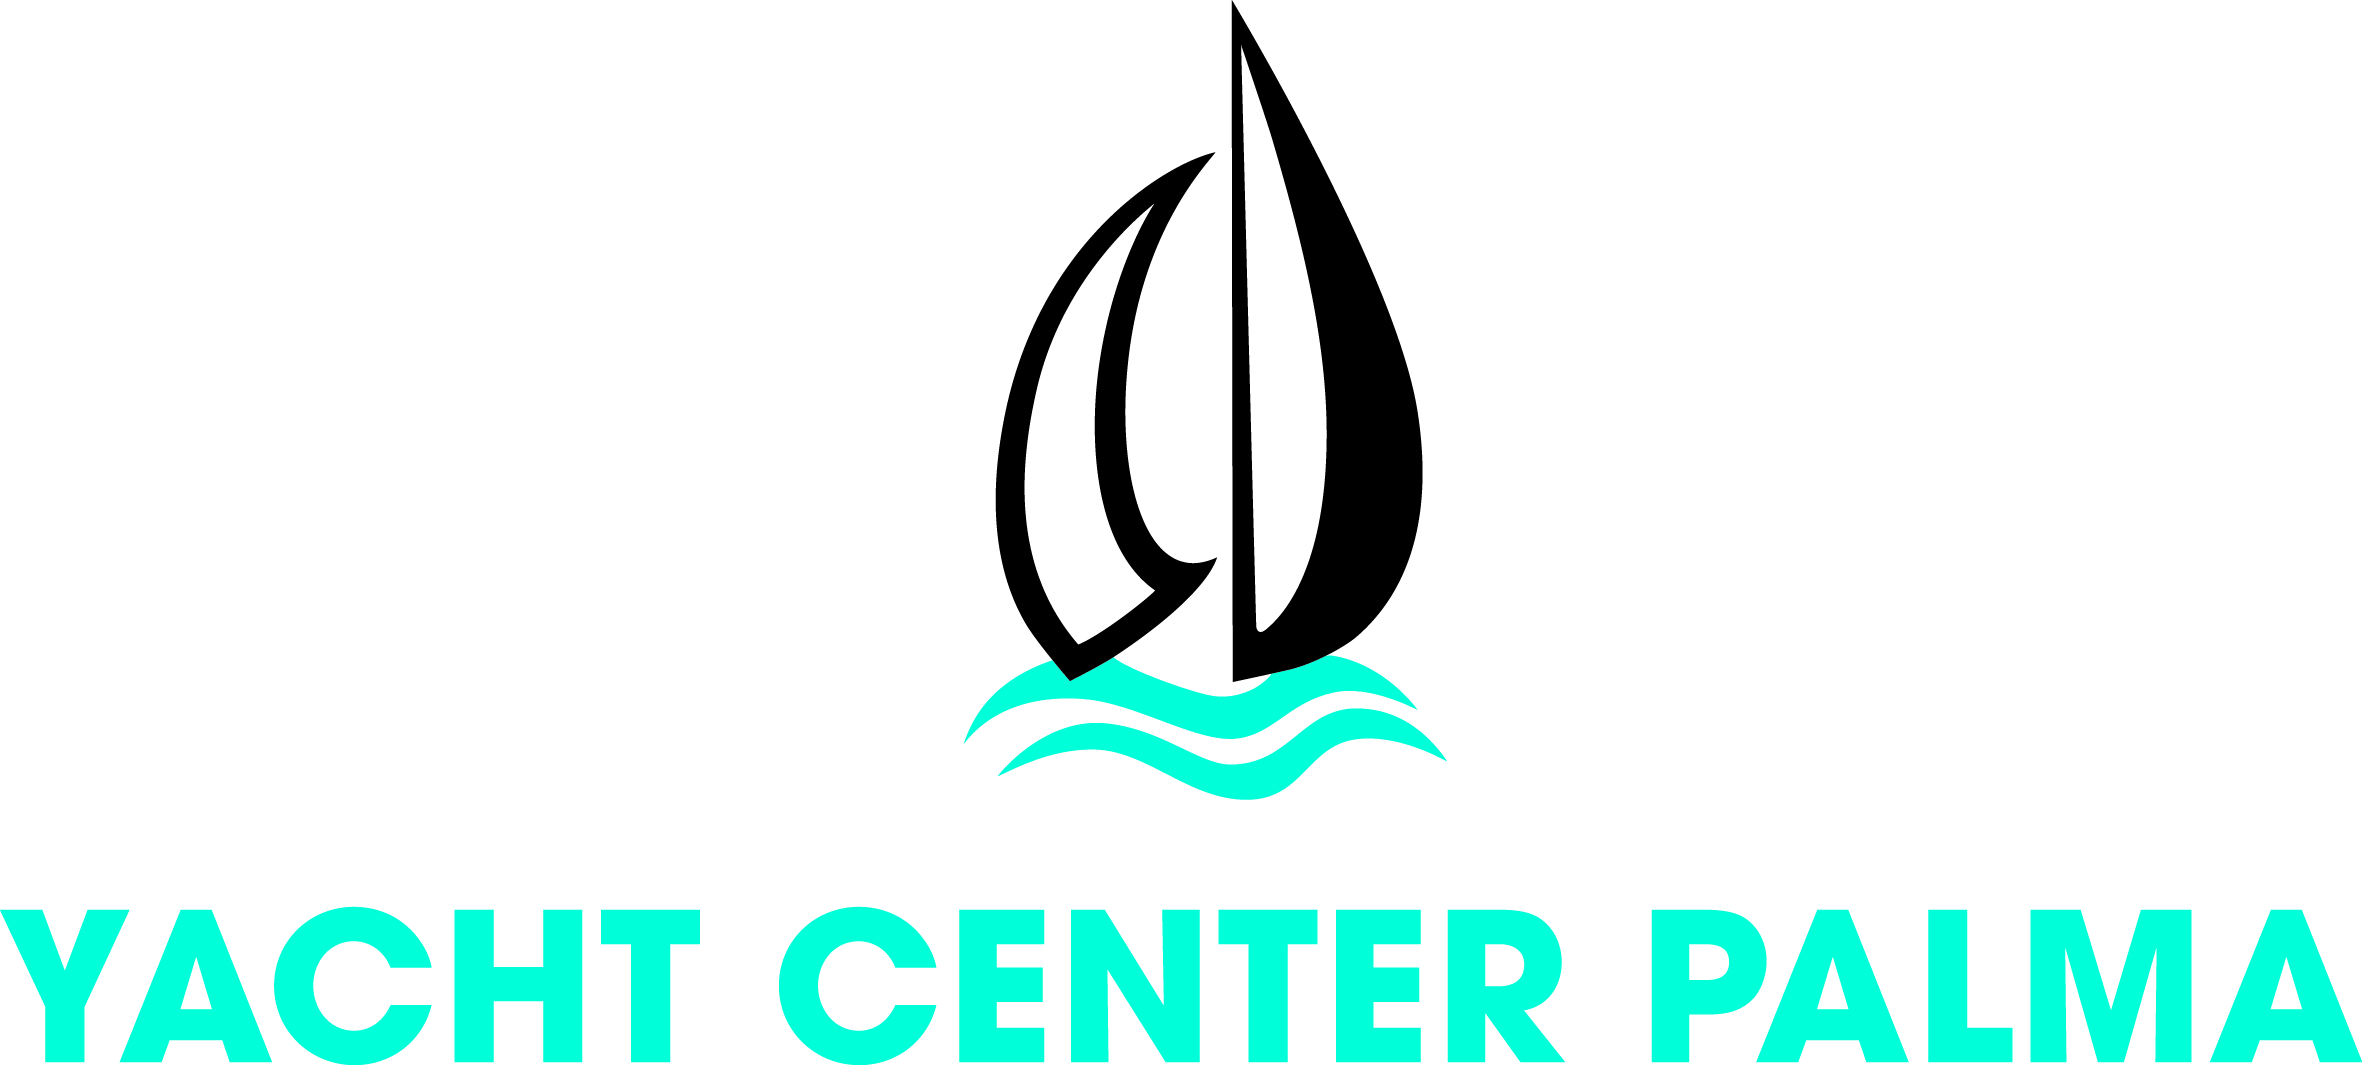 The Fast Growing Yacht Center Palma to Open Third Store